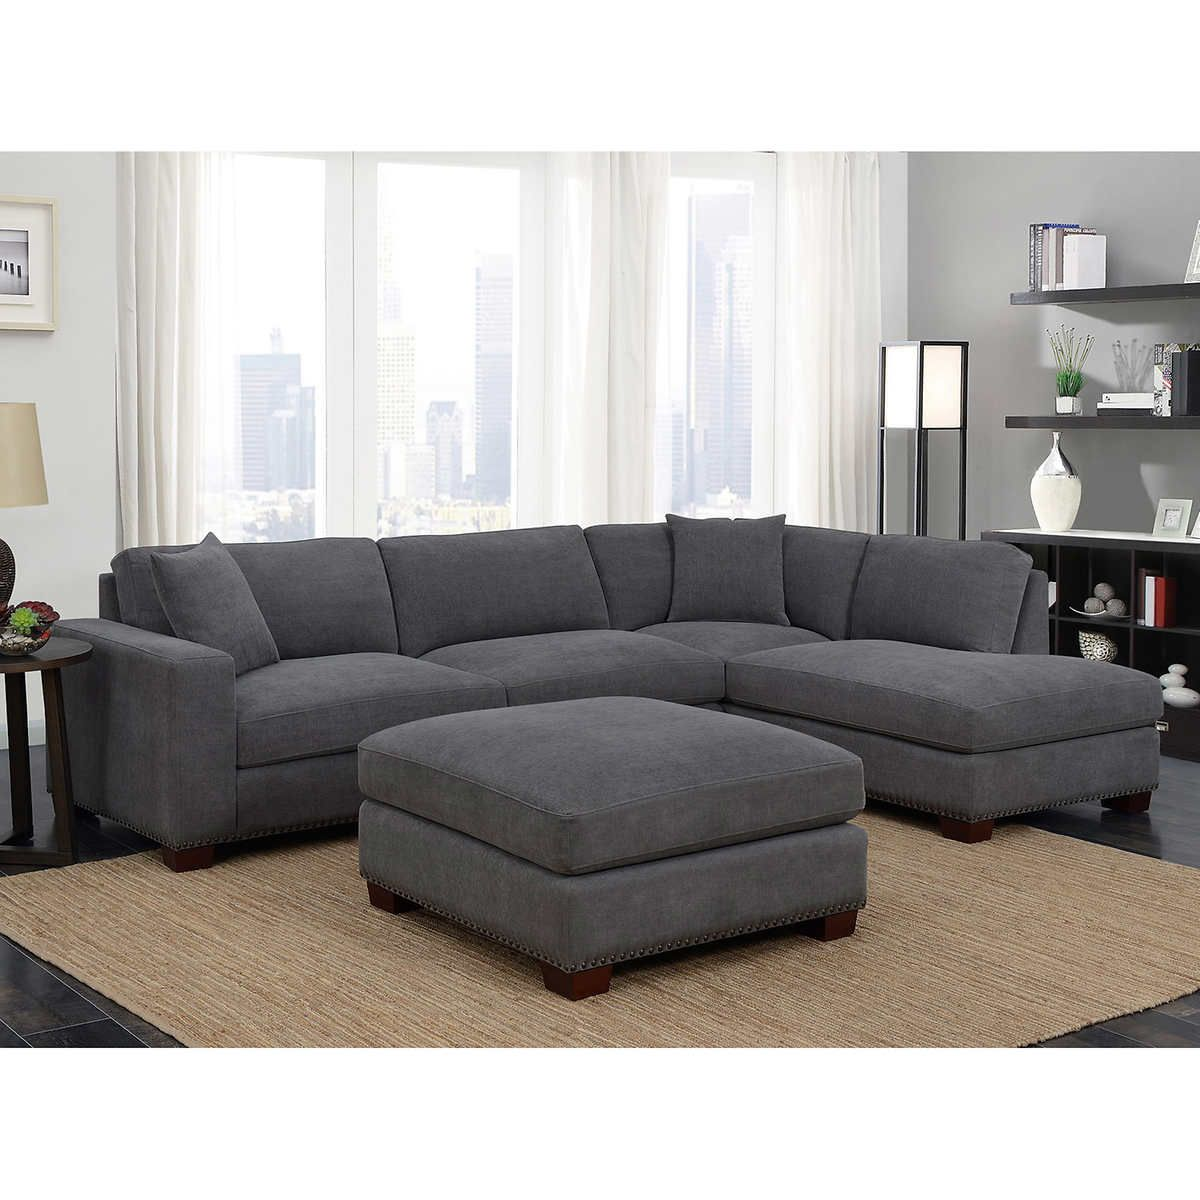 Overstock 1150 Fabric sectional sofas, Sectional living